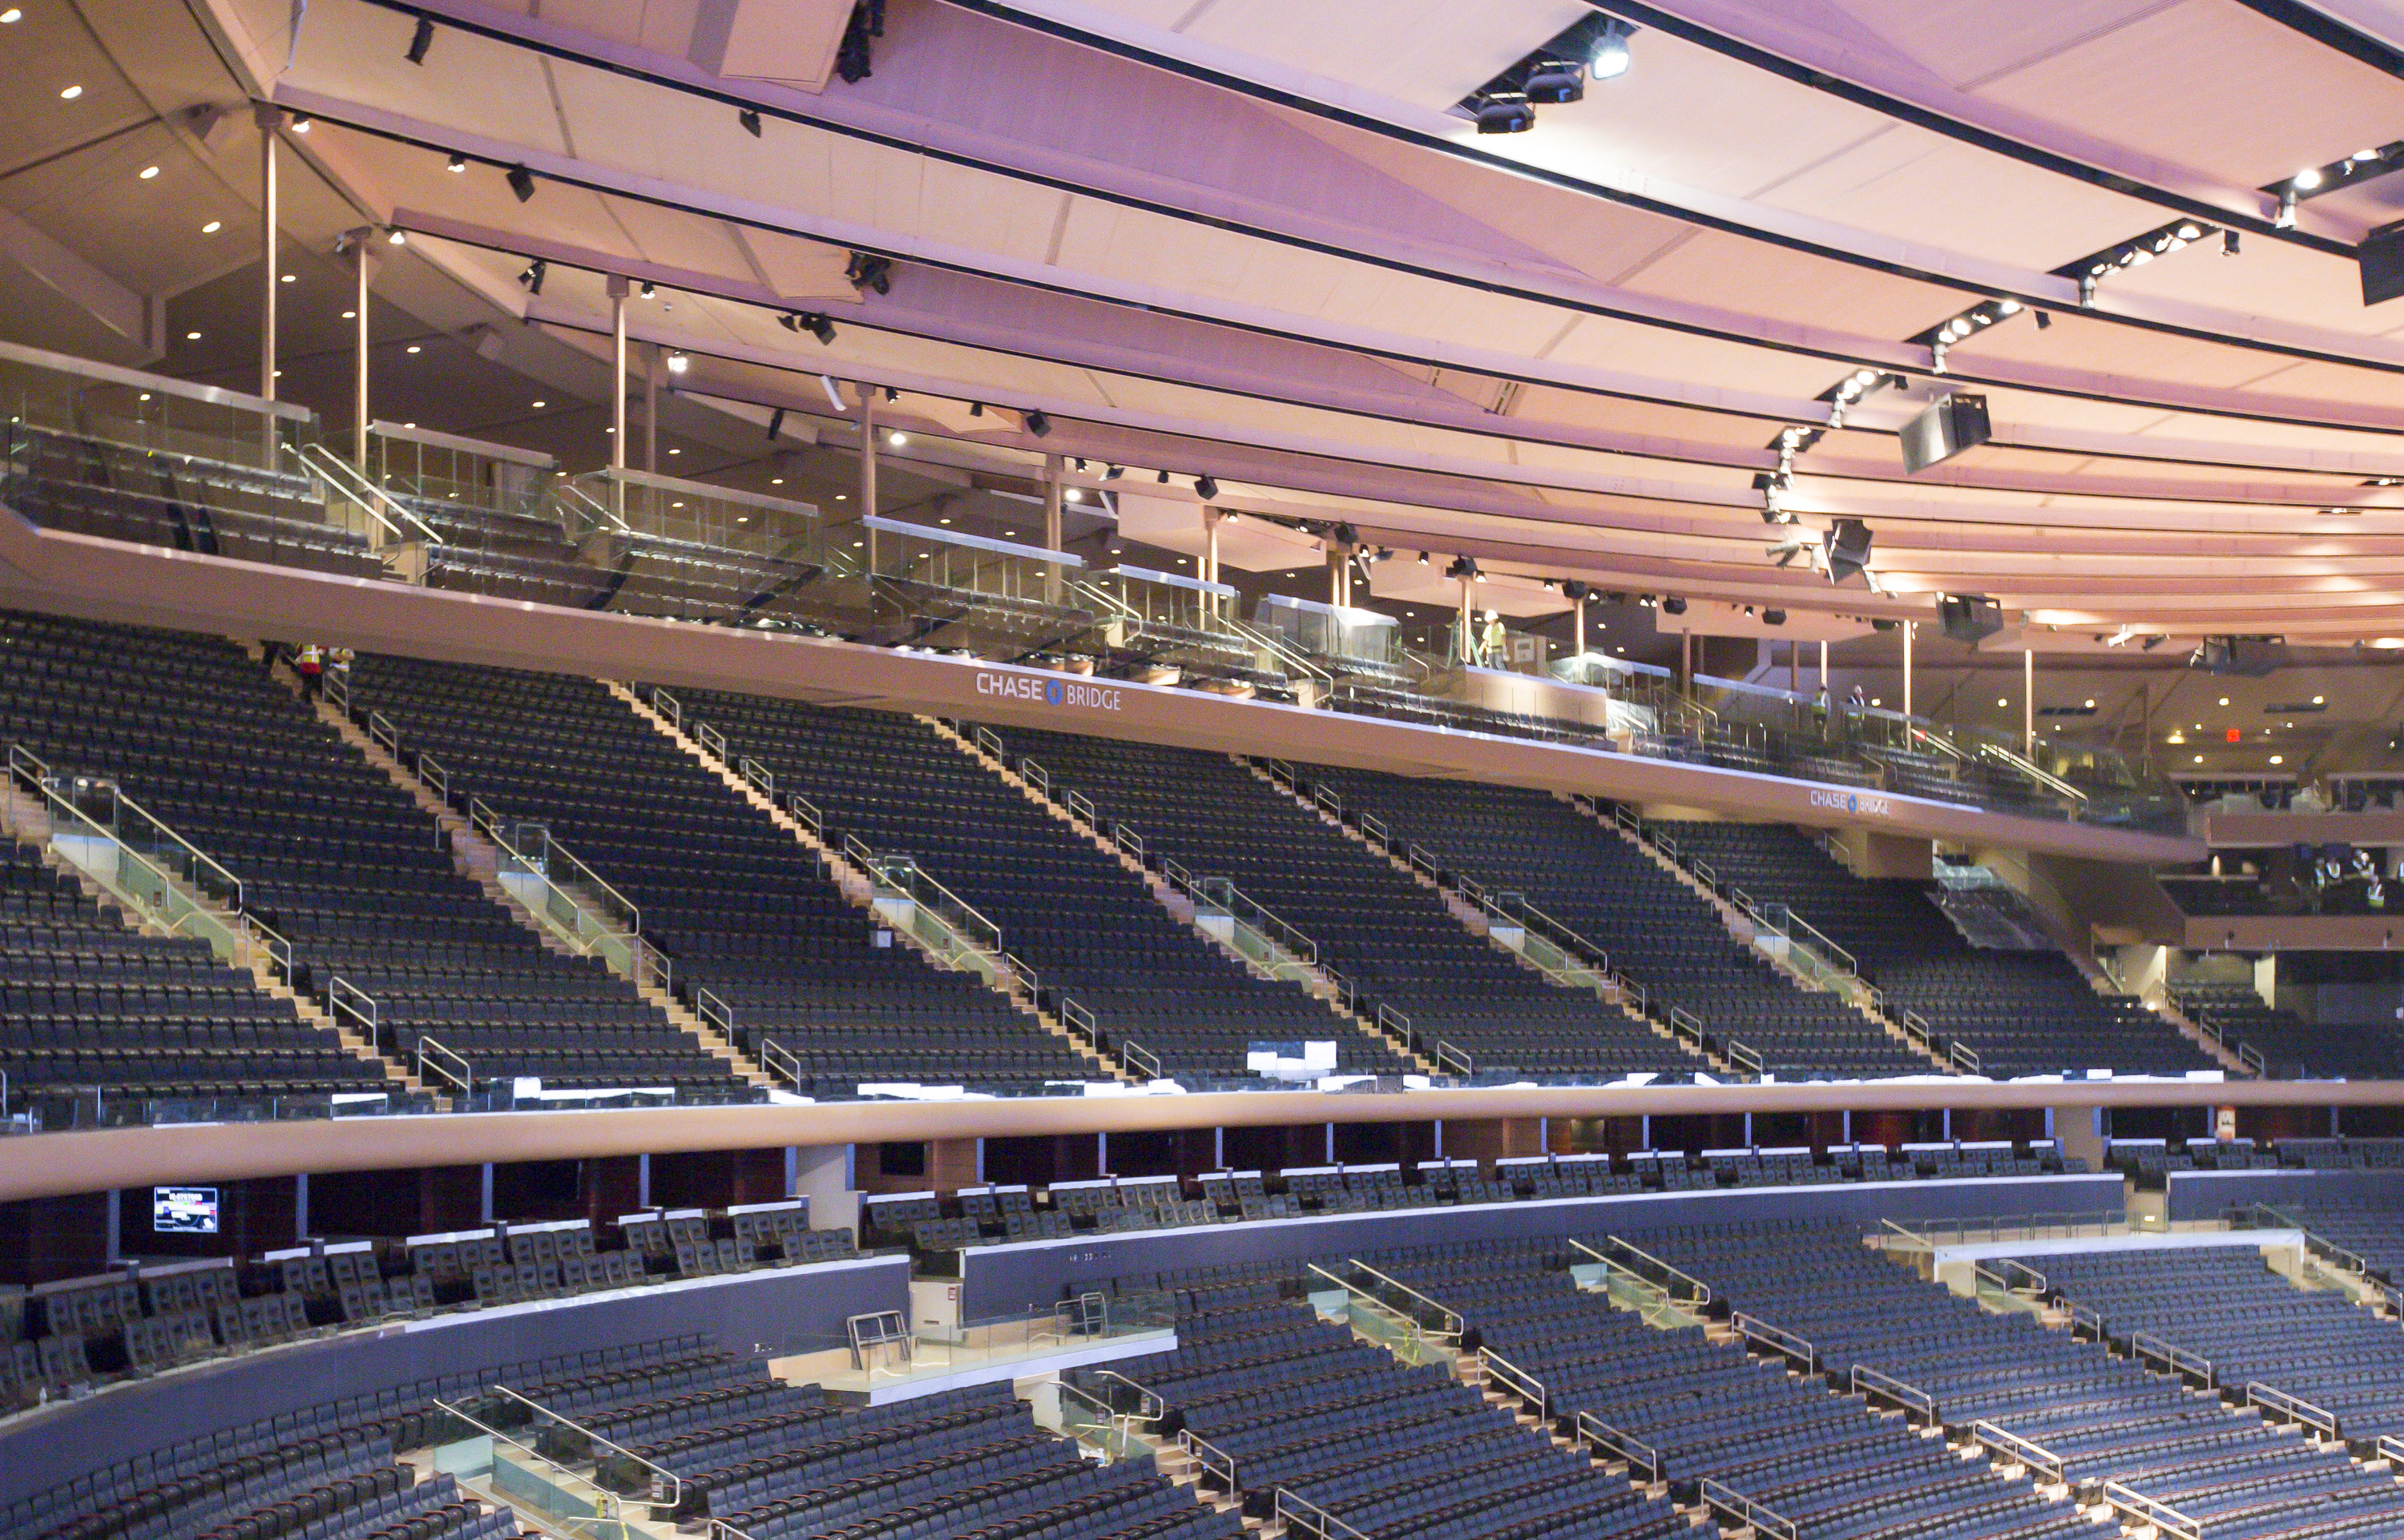 The new state of the art tech d out madison square garden arena new york gossip gal by roz for Sports bars near madison square garden